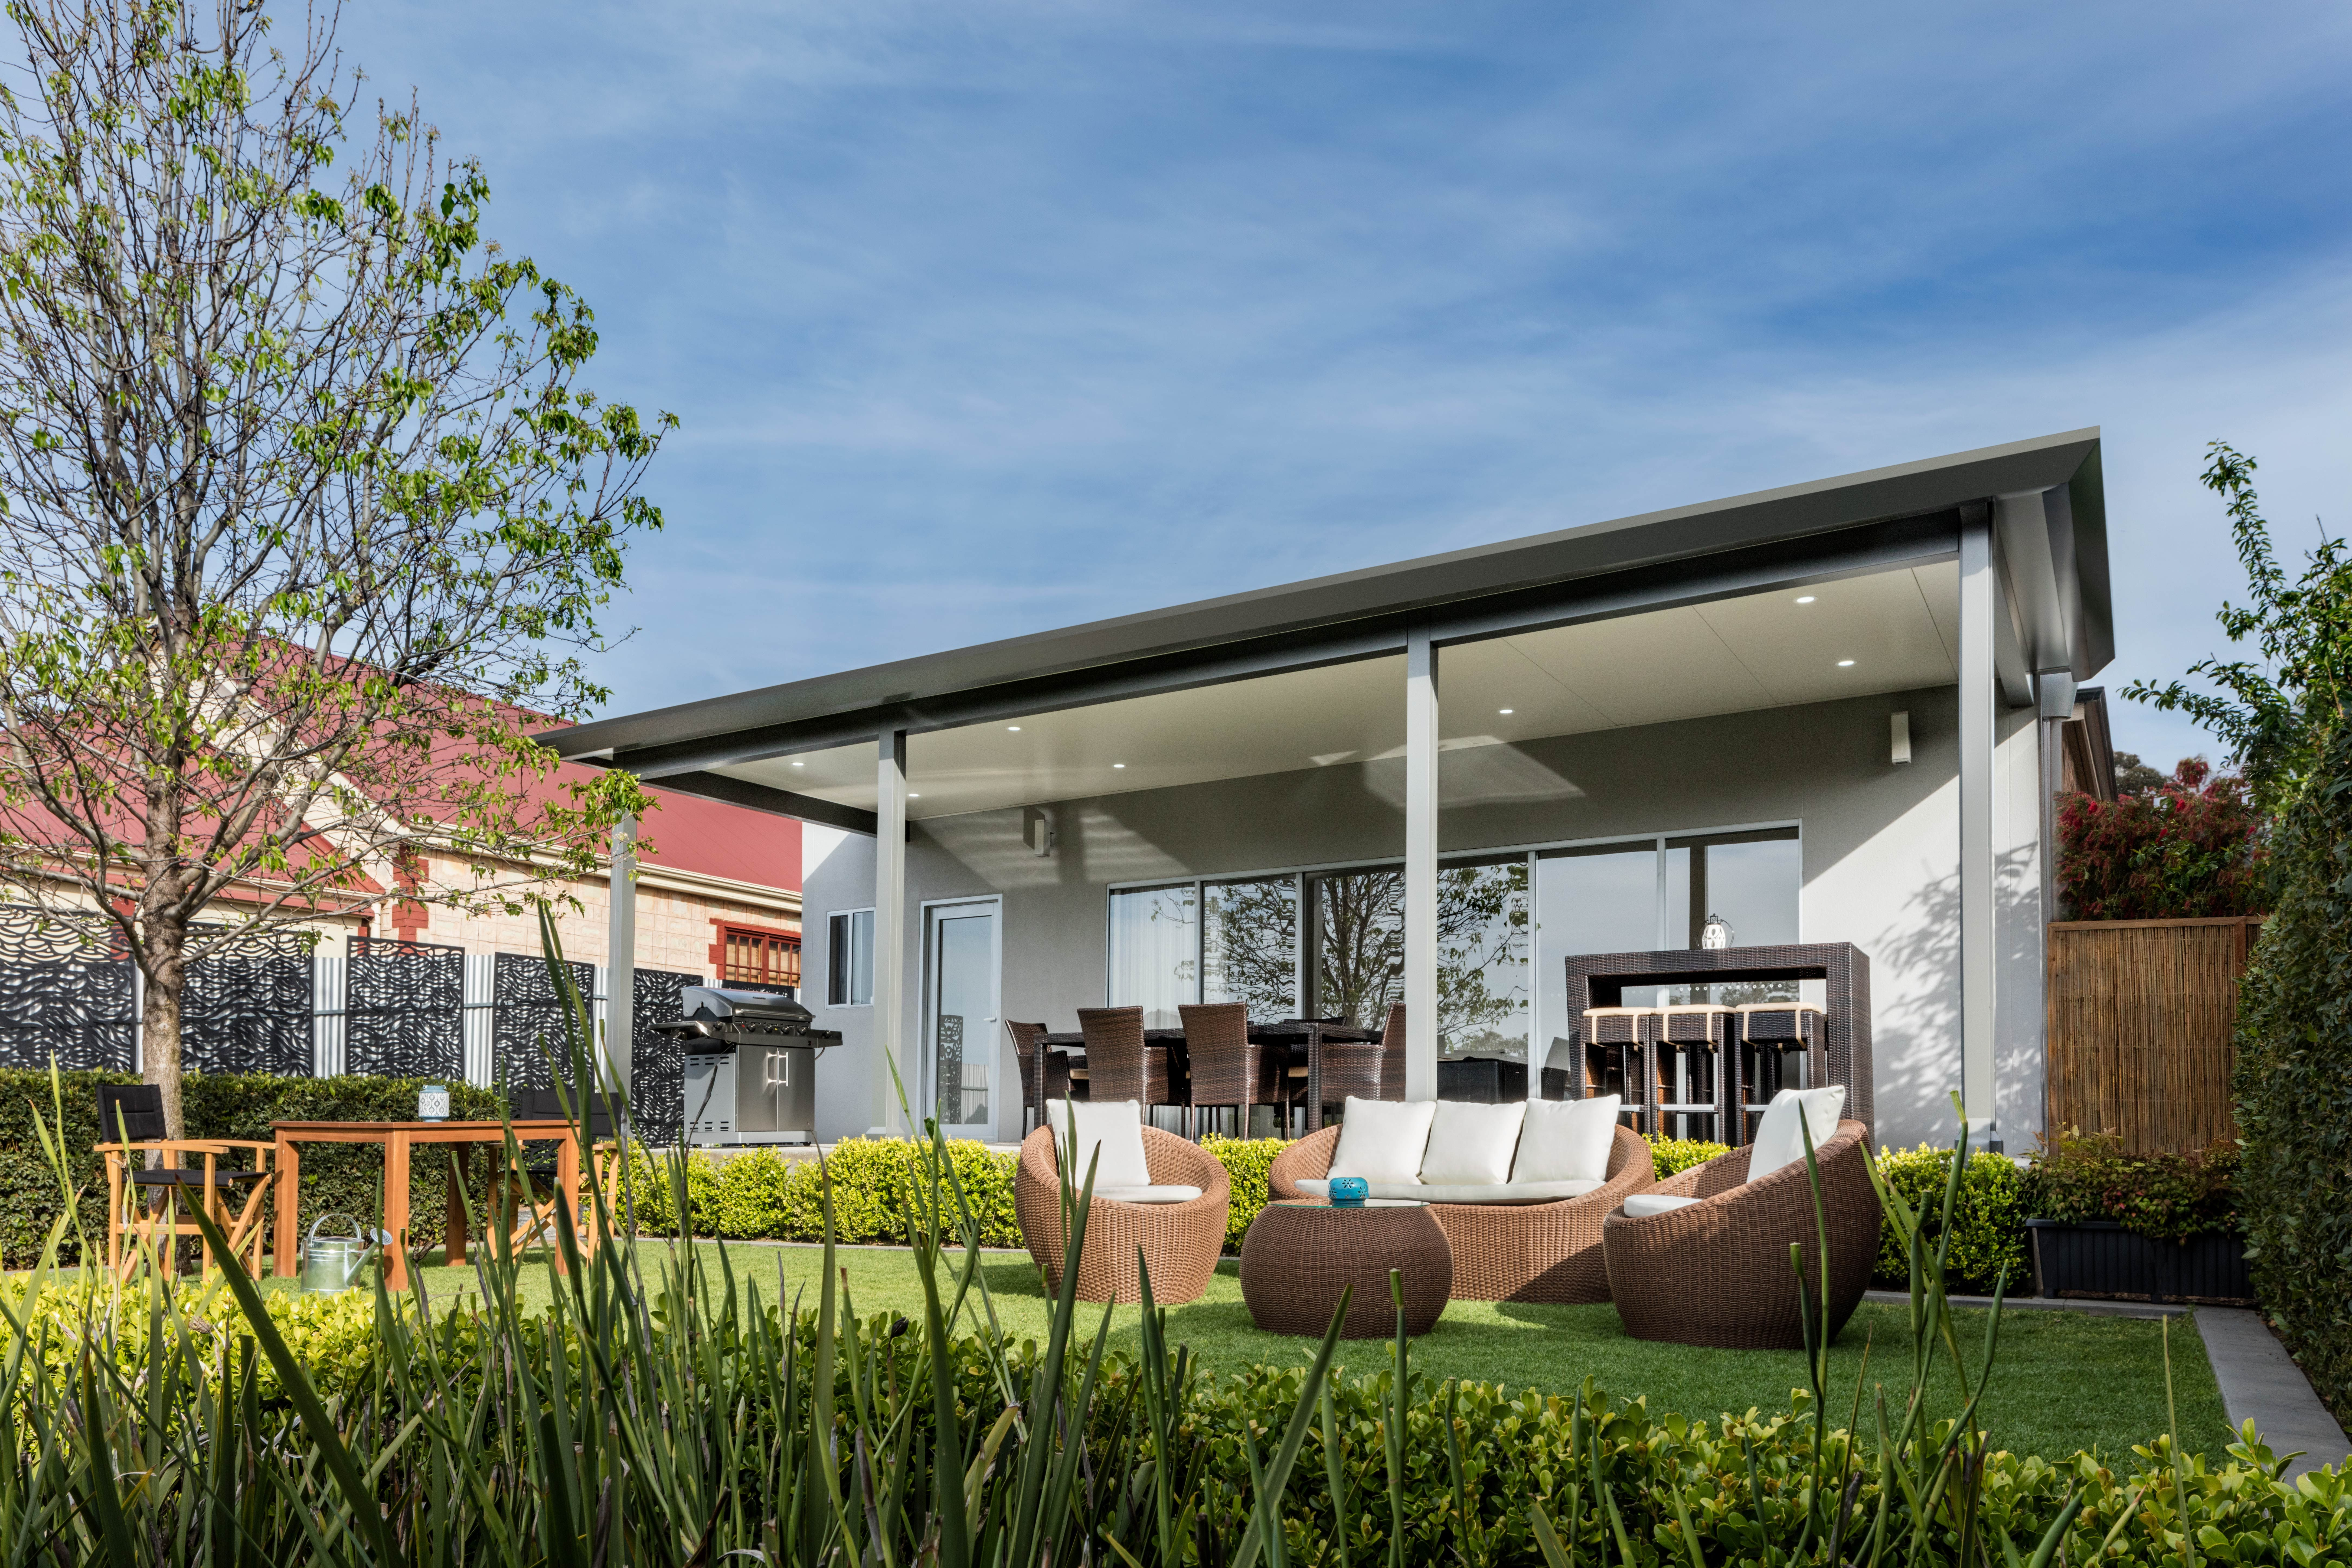 Pin by Stratco on Stratco Pavilion HowTo. Patio, Outdoor